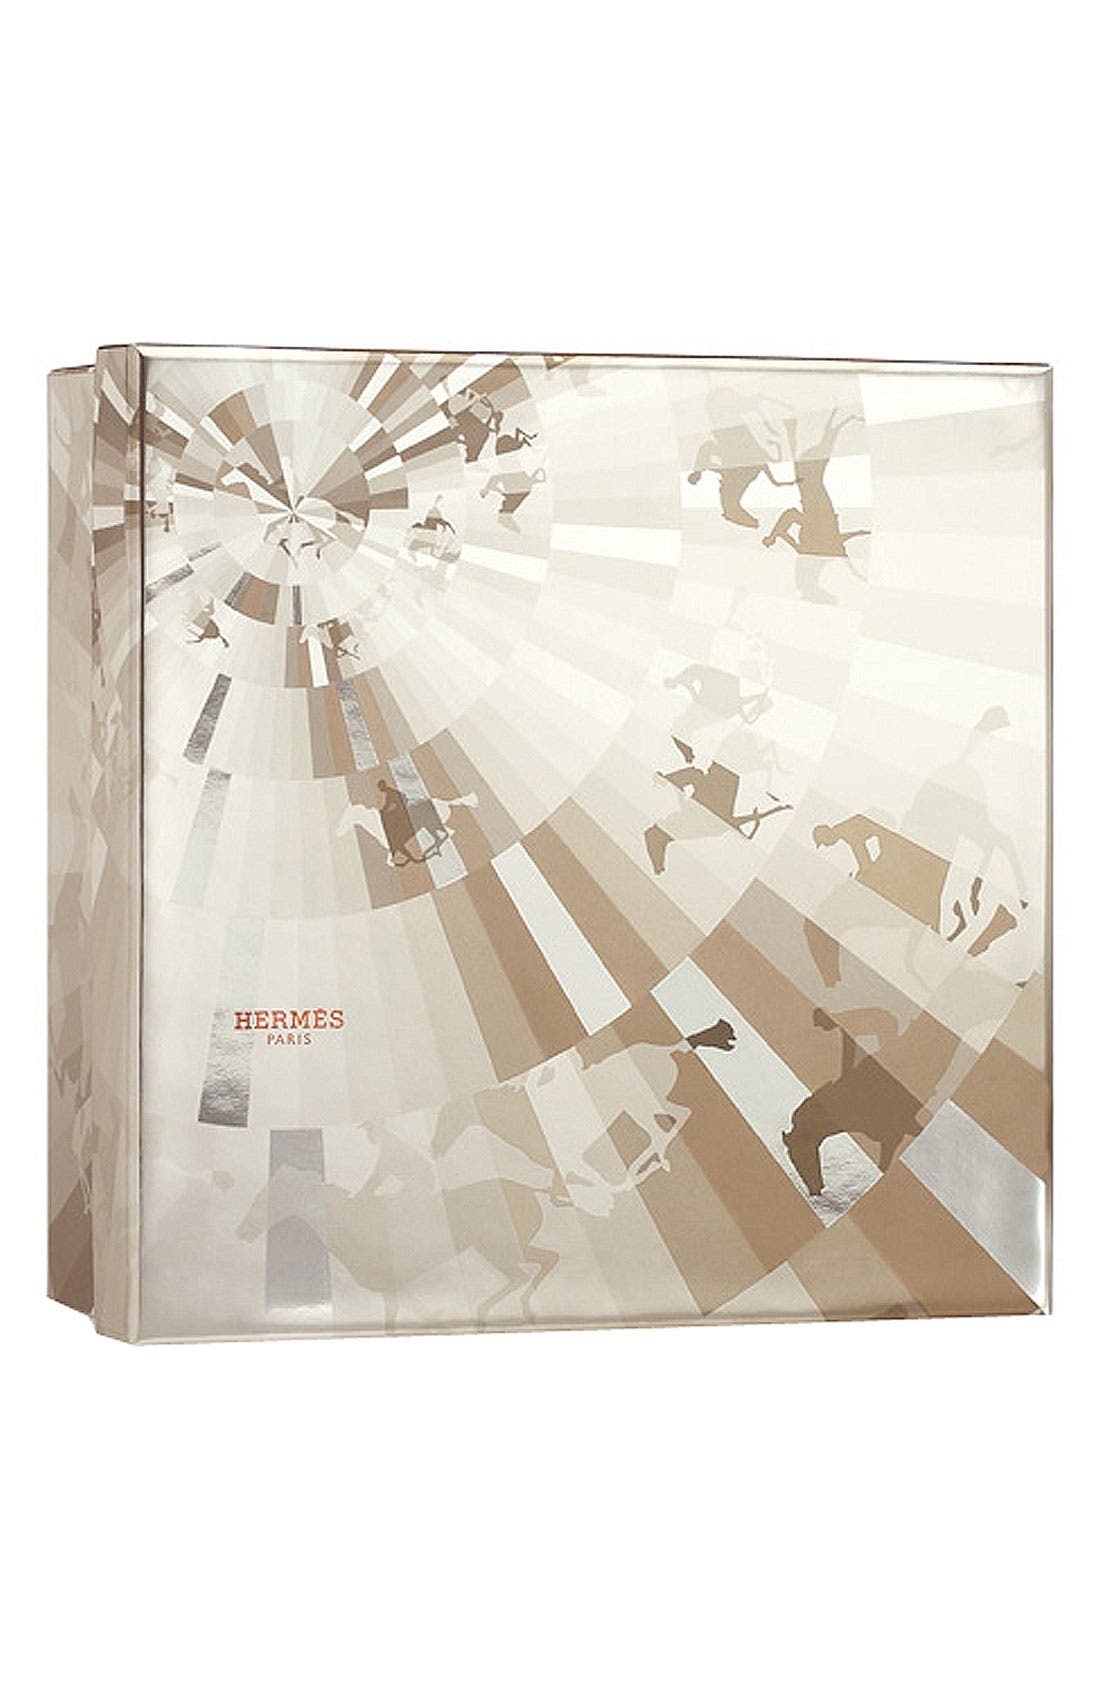 HERMÈS,                             24 Faubourg - Eau de parfum gift set,                             Alternate thumbnail 2, color,                             000